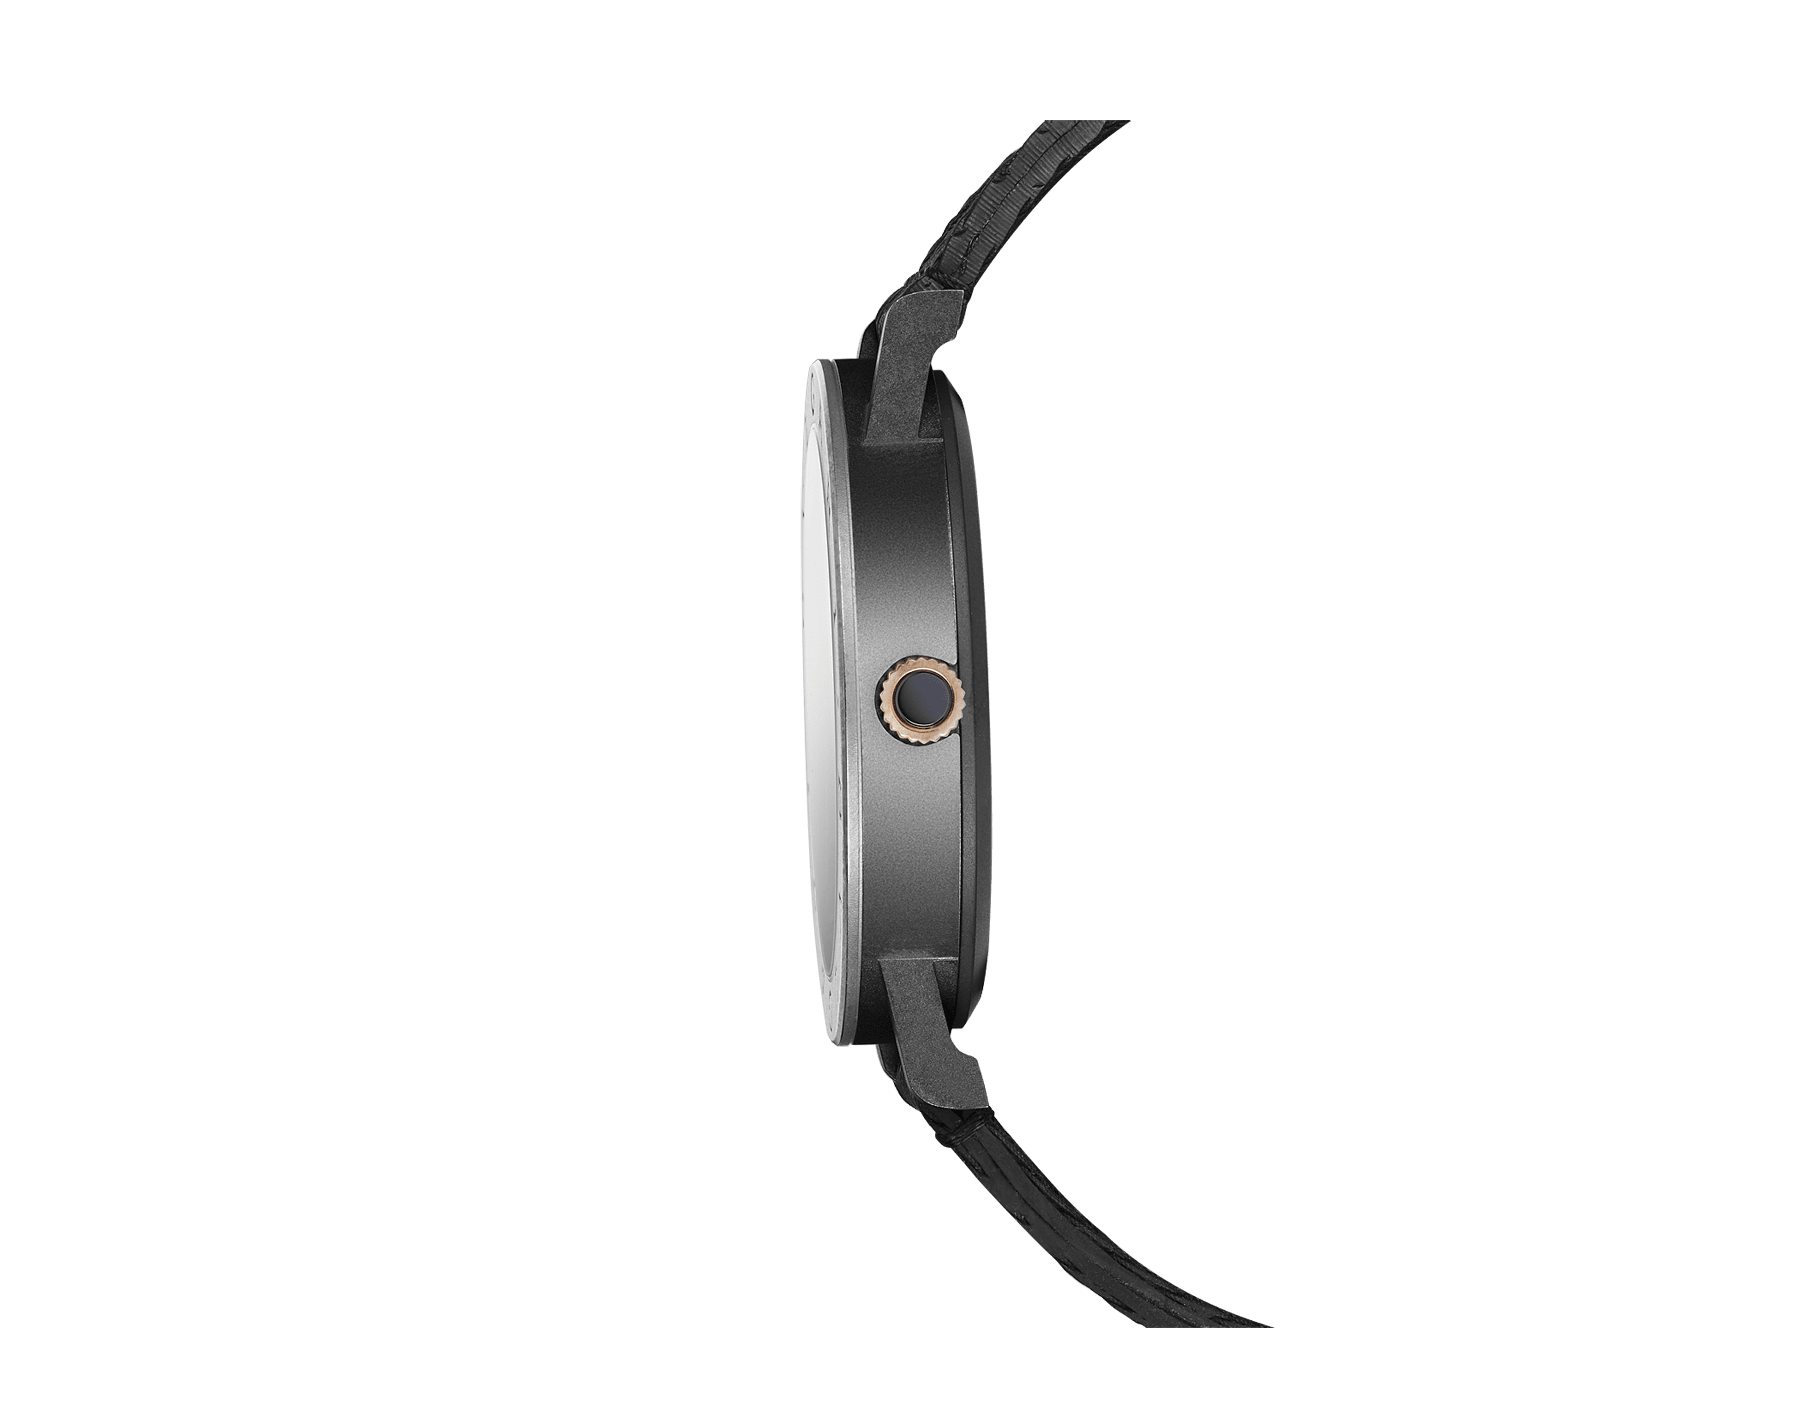 BVLGARI BVLGARI Solotempo watch with mechanical manufacture movement, automatic winding and date, stainless steel case treated with black Diamond Like Carbon and bezel engraved with double logo, black dial, black rubber bracelet and interchangeable brown calf leather bracelet 102929 image 2